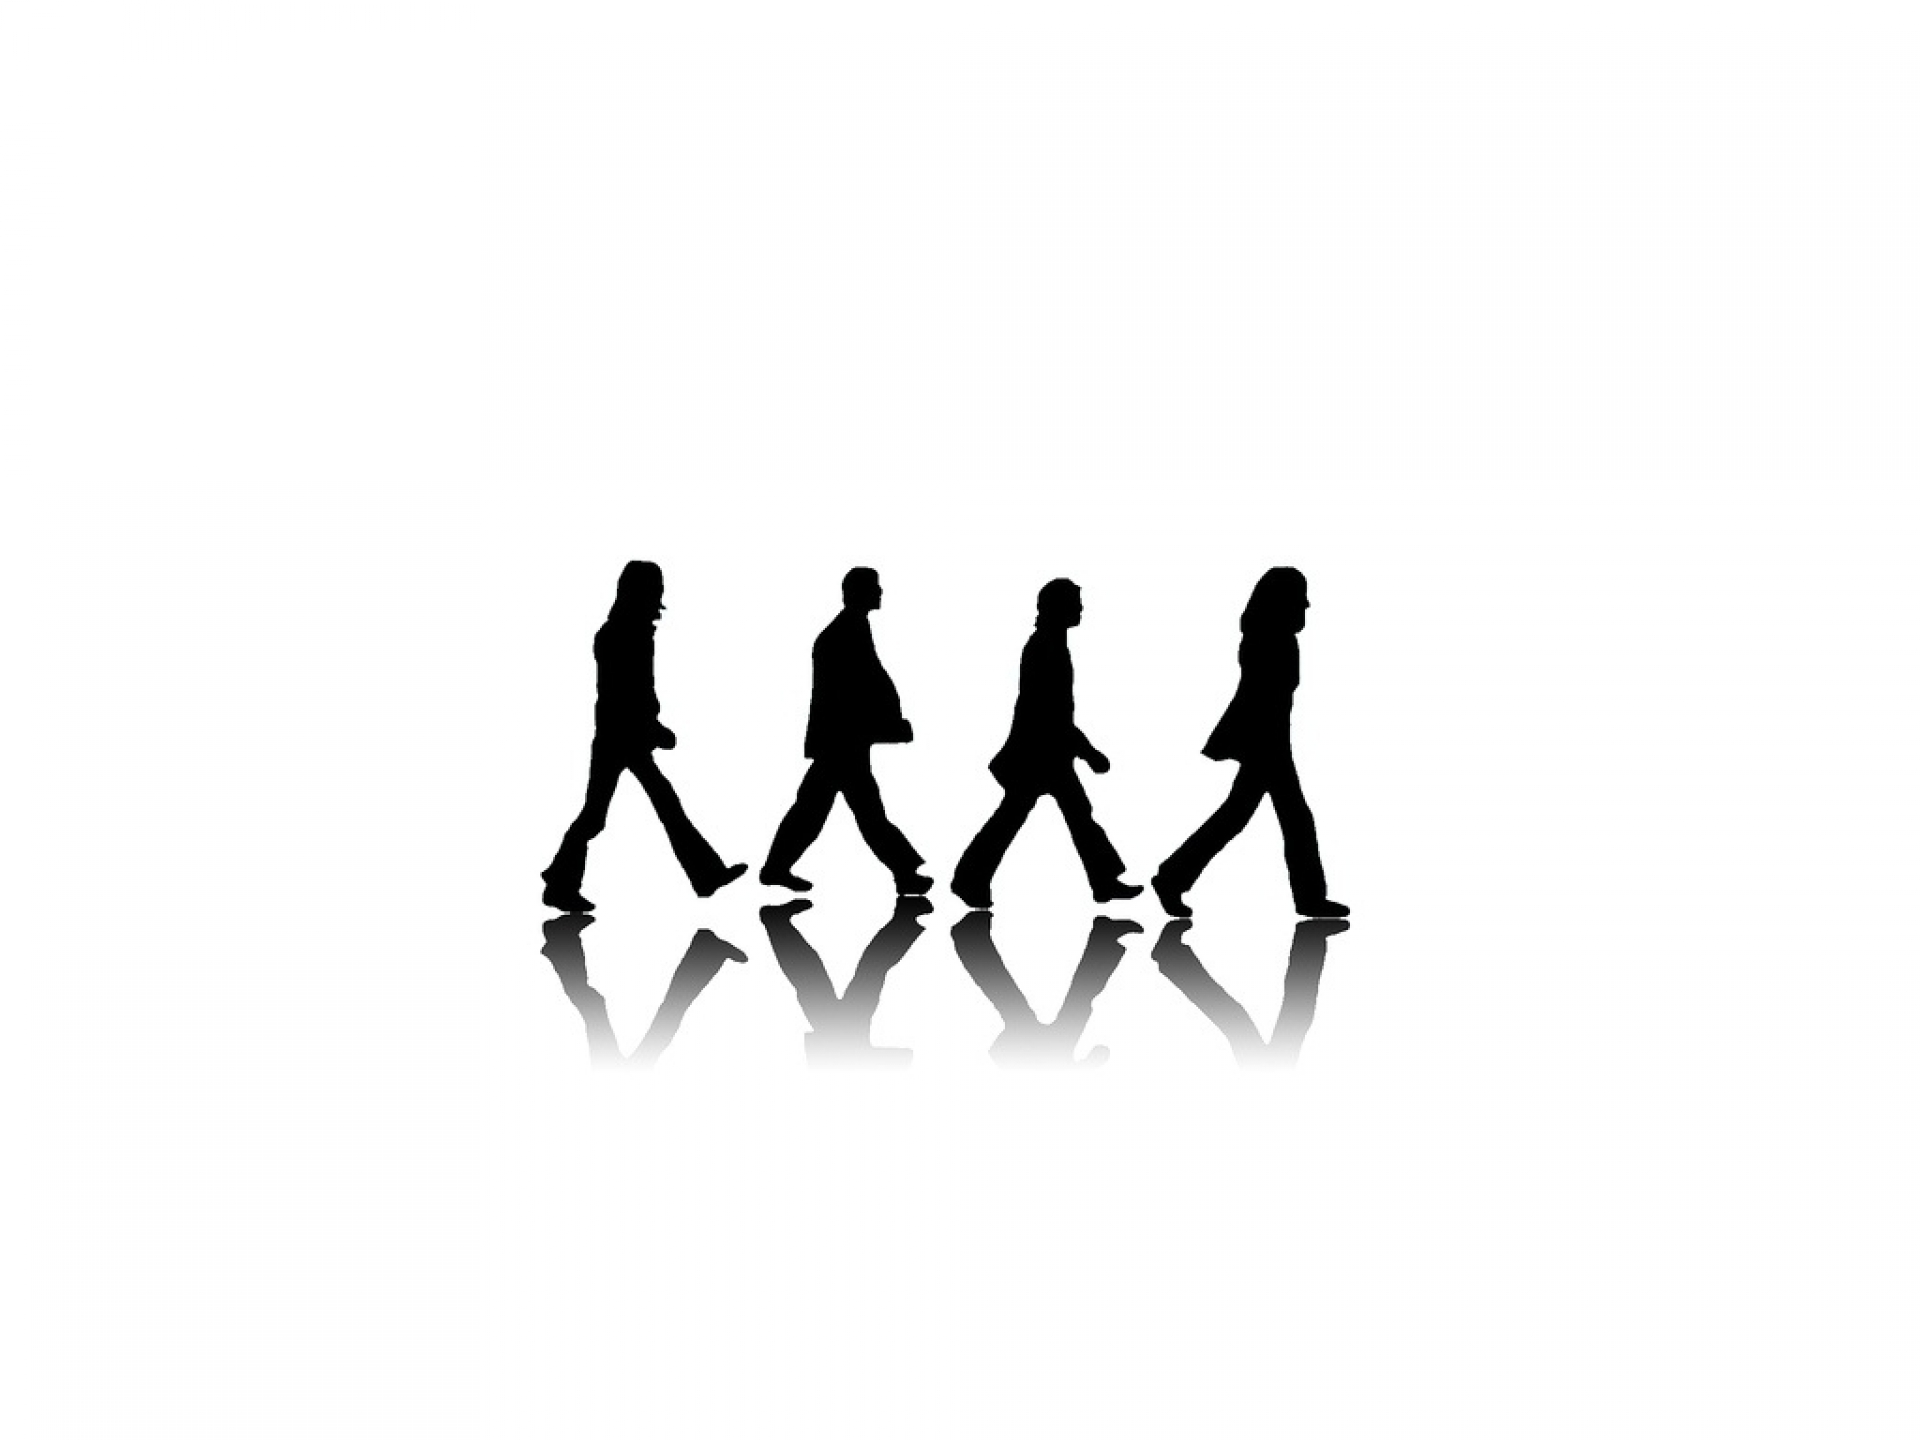 The Beatles Silhouette At Getdrawings